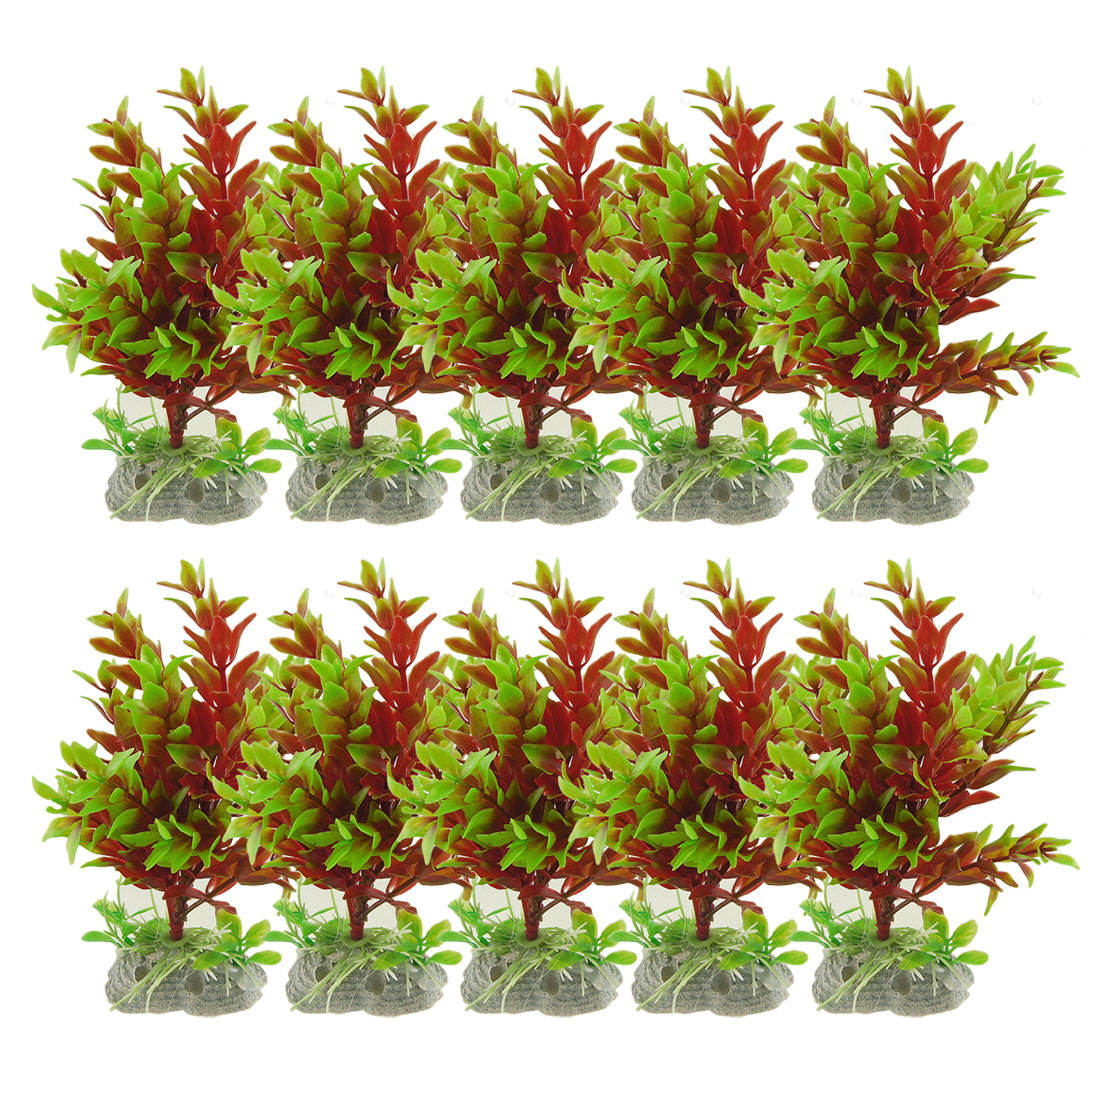 10 Pcs Fish Tank Red Green Emulational Plant Grass Decor